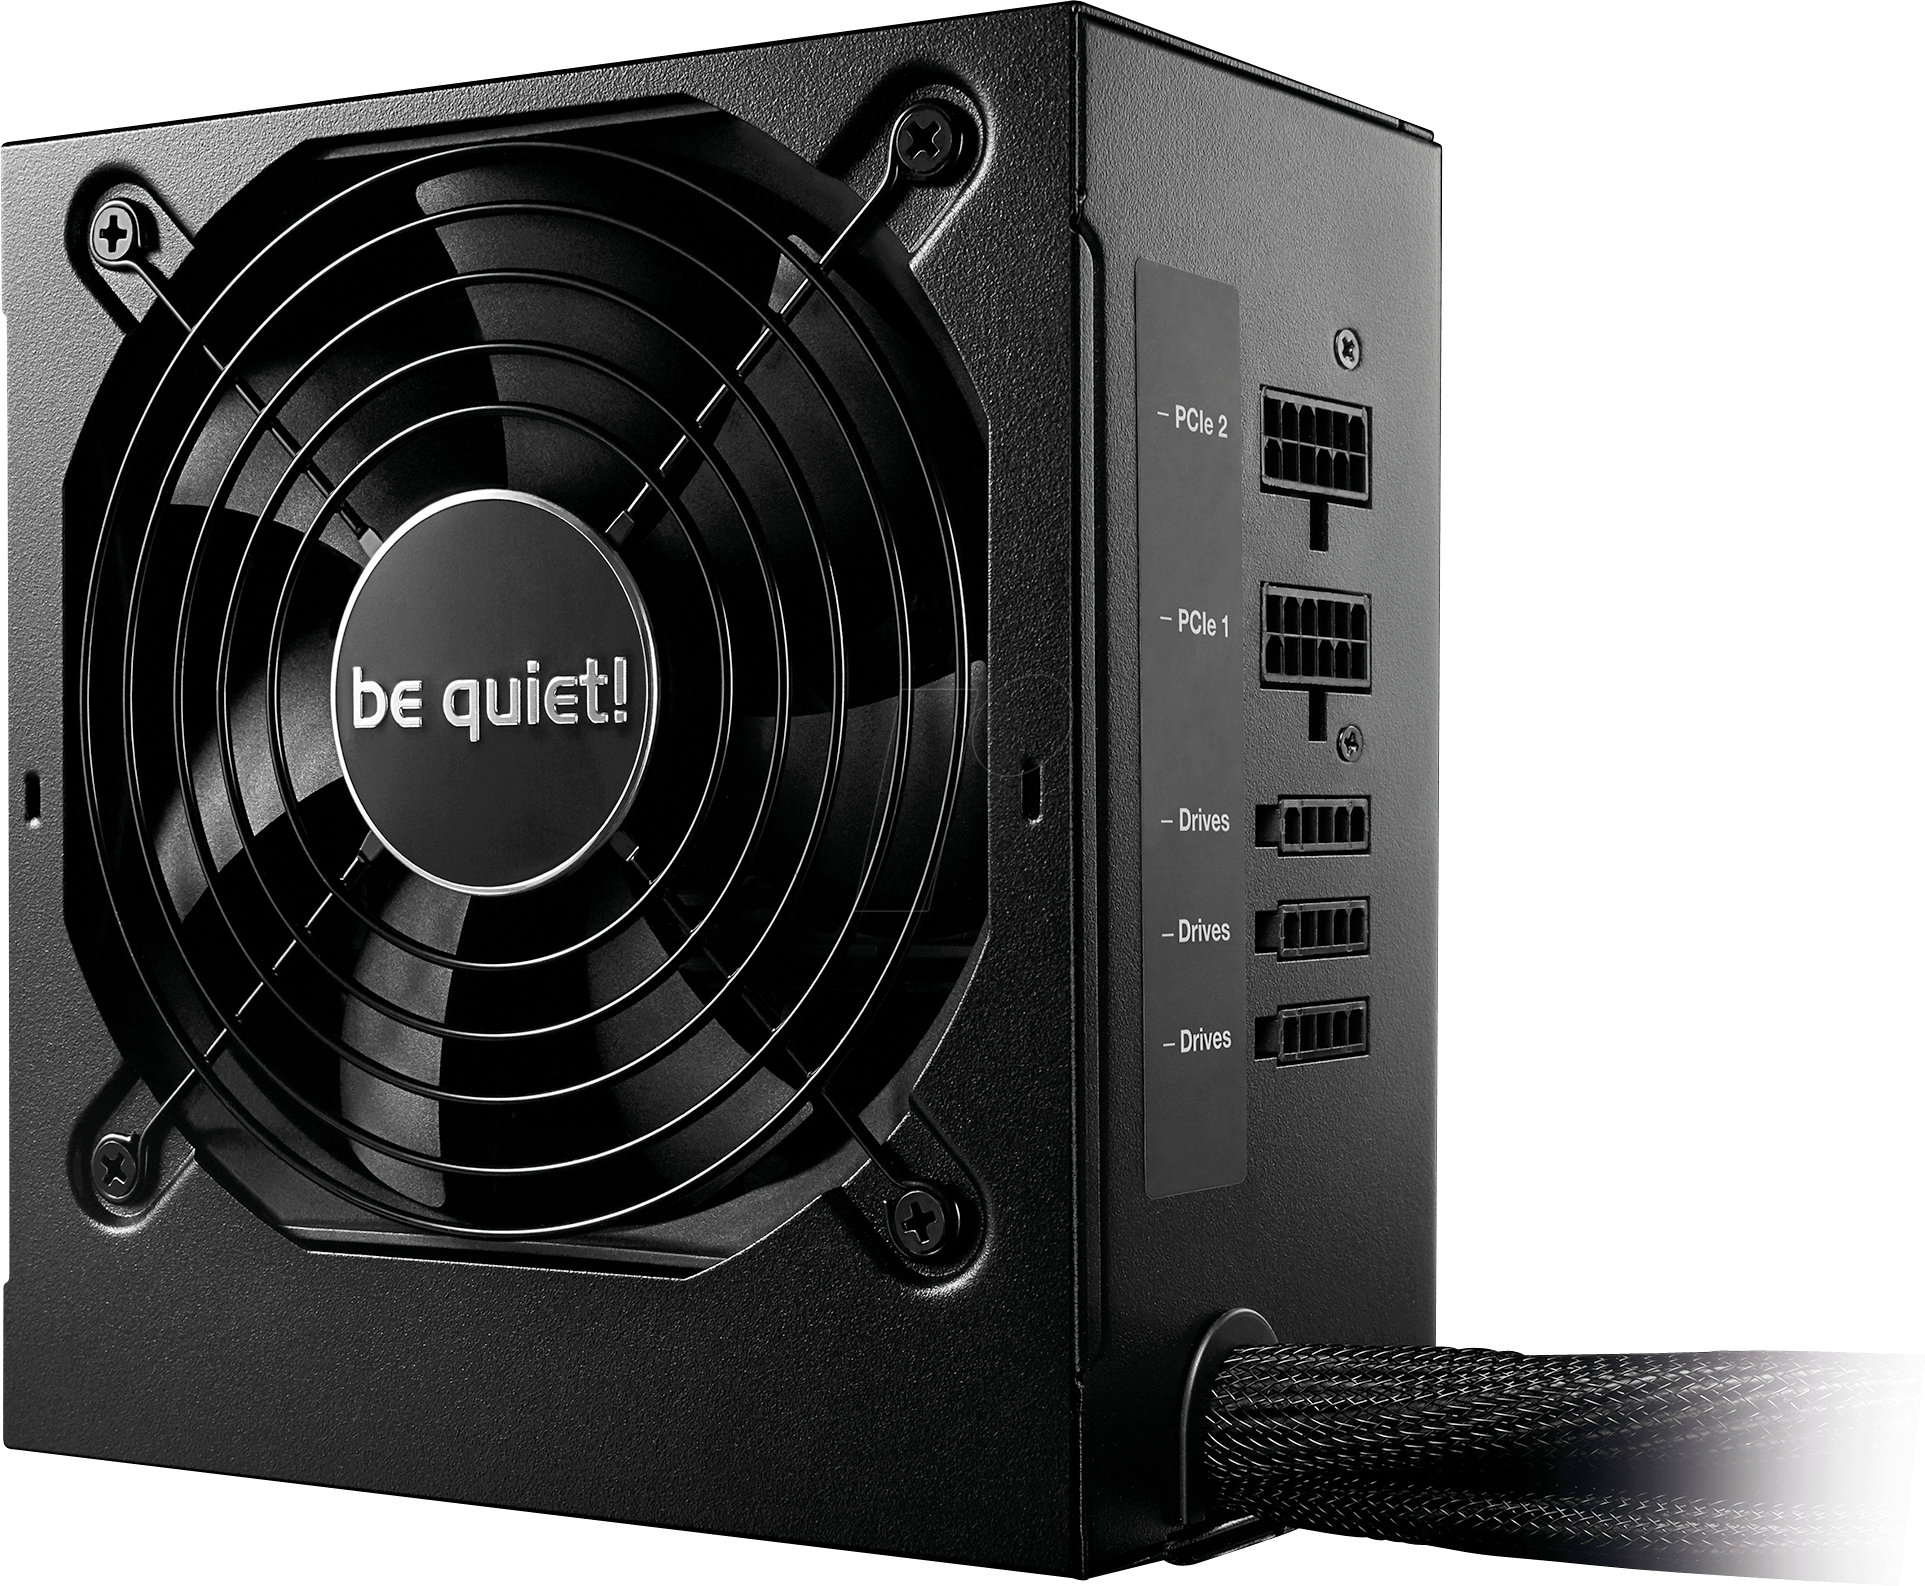 BQT BN302 - be quiet! System Power 9 600W CM